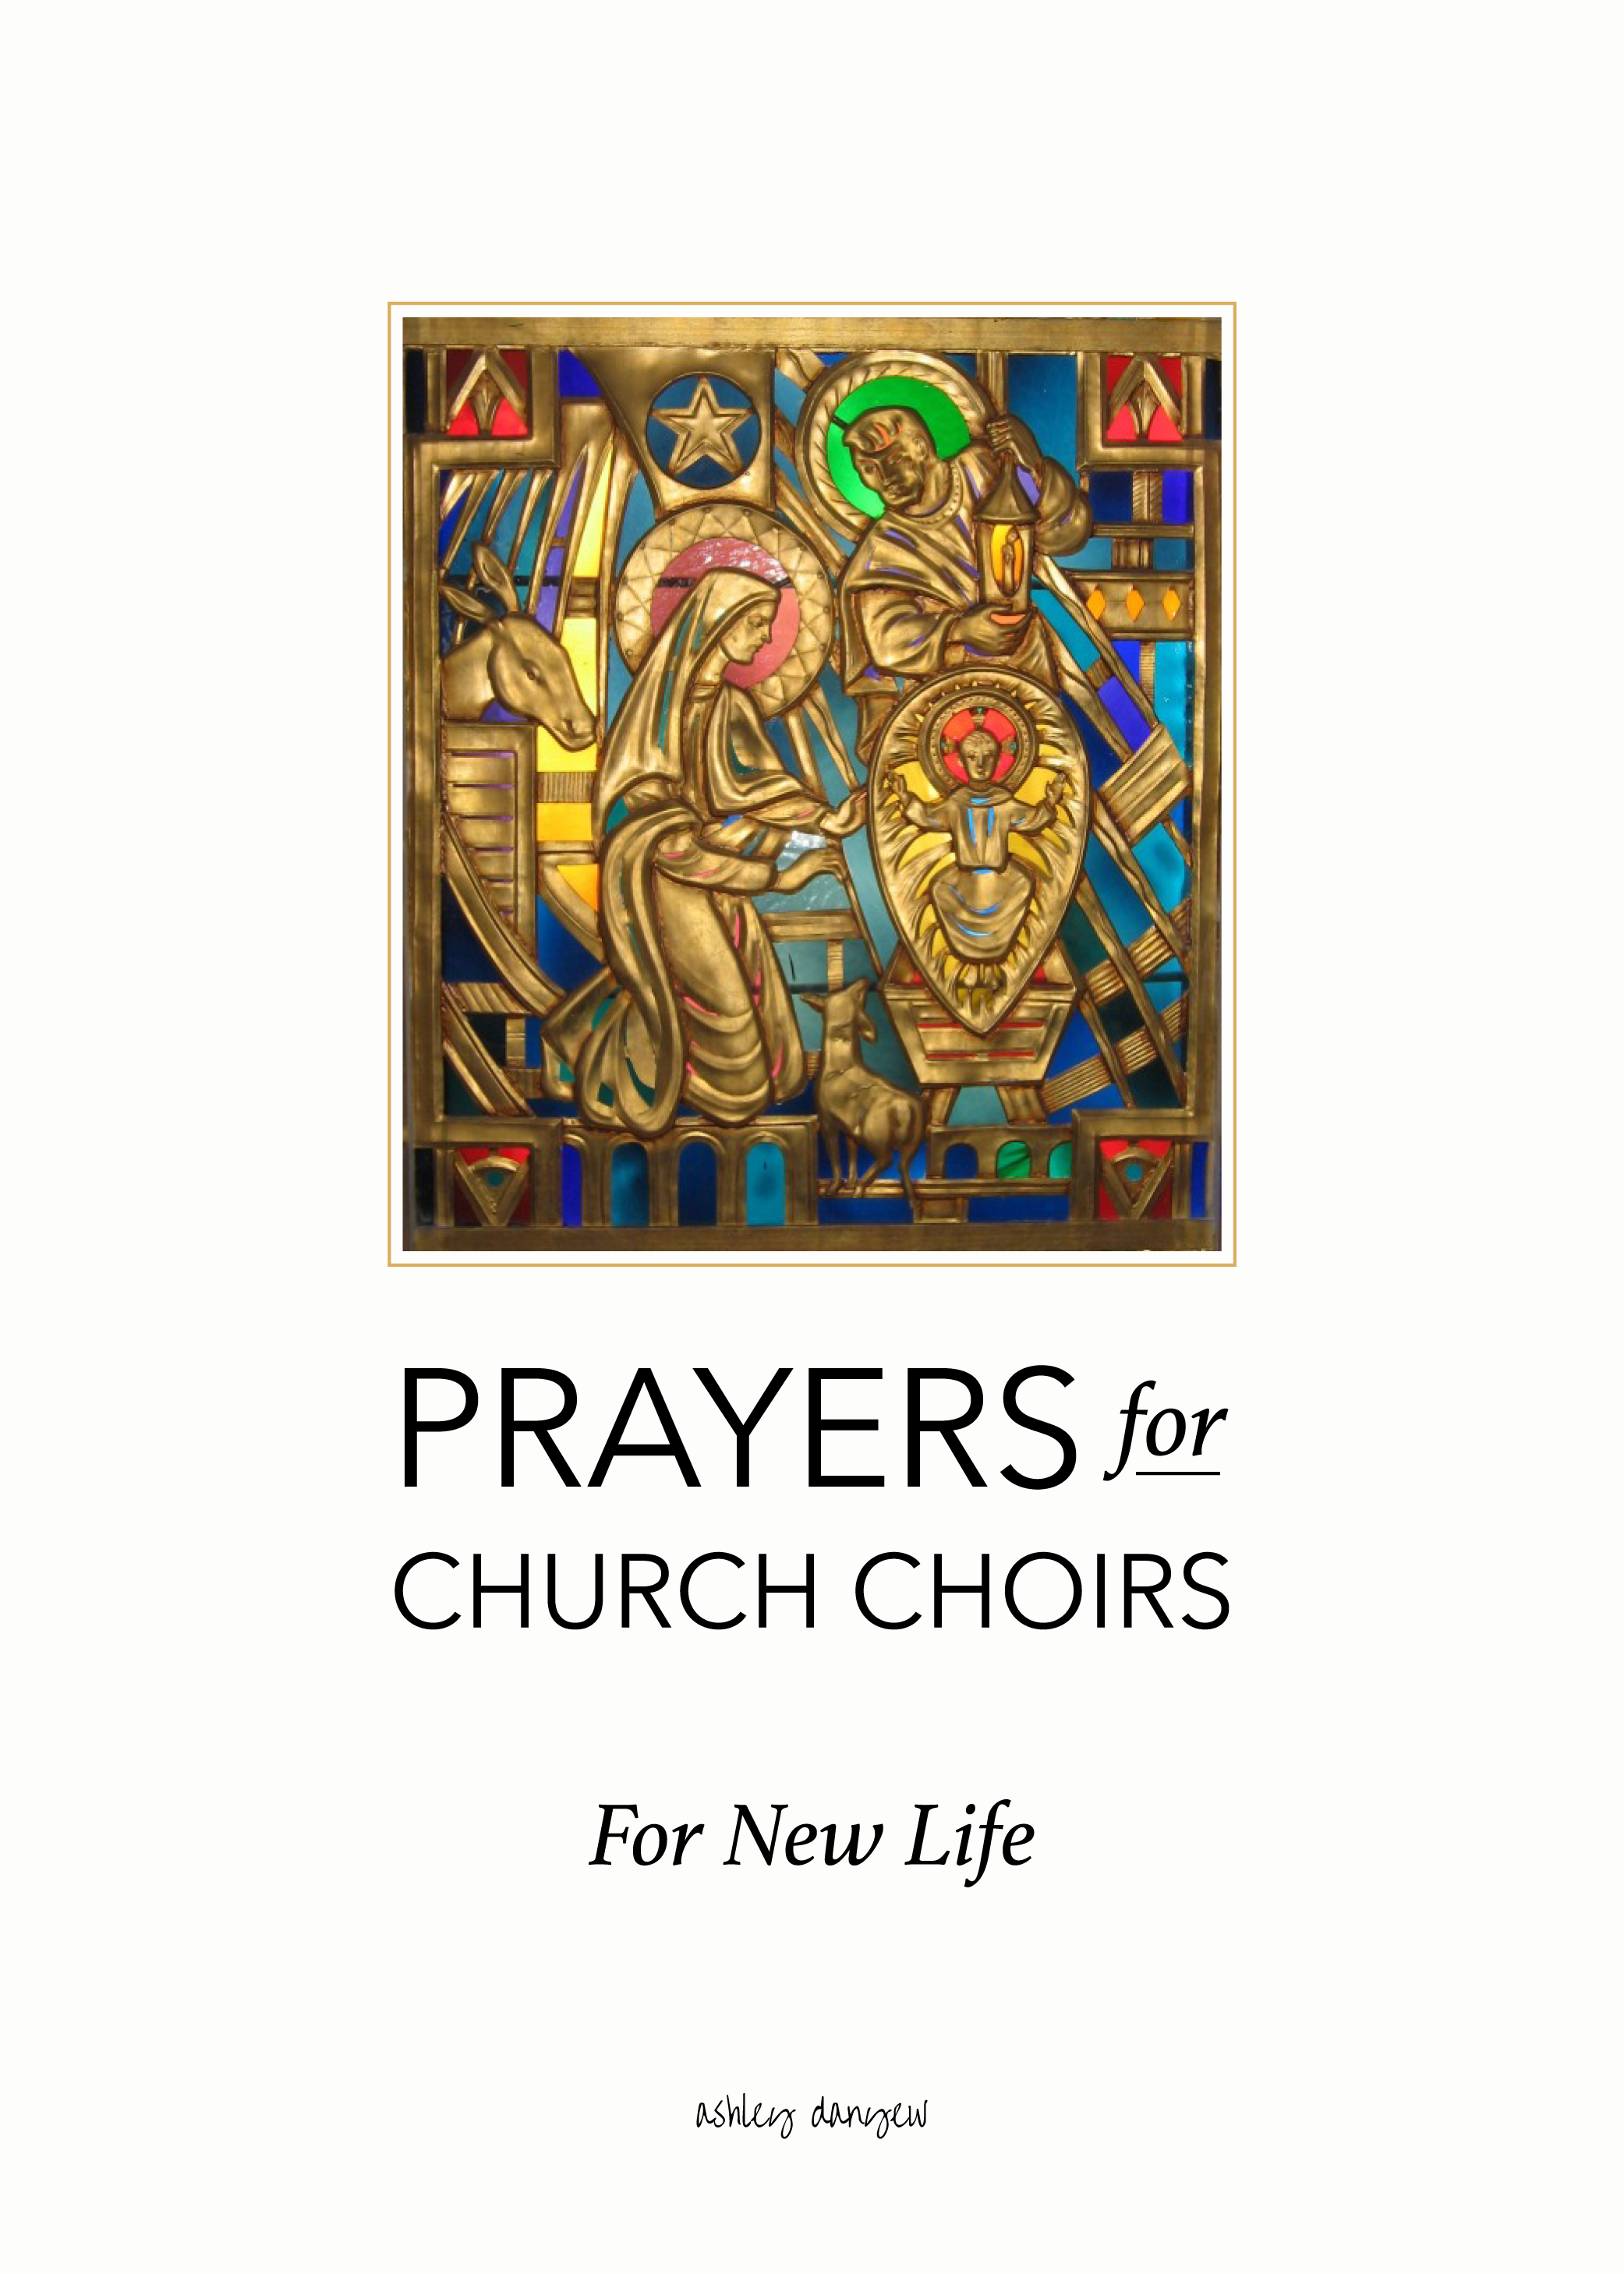 Prayers-for-Church-Choirs_New-Life-05.png